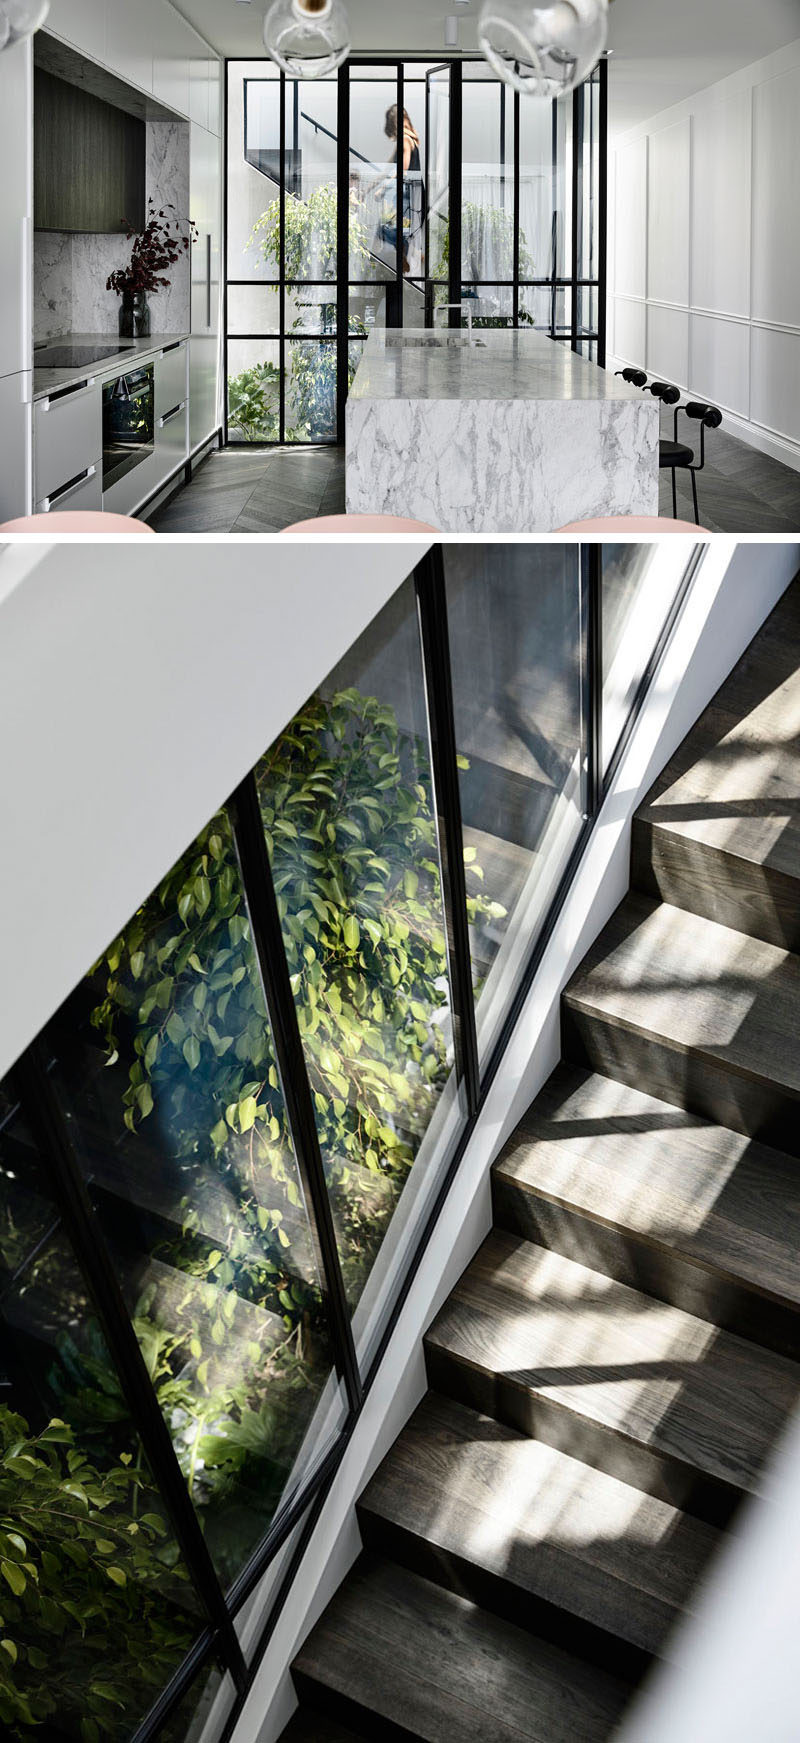 A plant-filled, glass-enclosed atrium opens up the center of this modern house and allows for views between the kitchen and staircase to the children's bedrooms upstairs. #Atrium #InteriorDesign #Stairs #Windows #Architecture